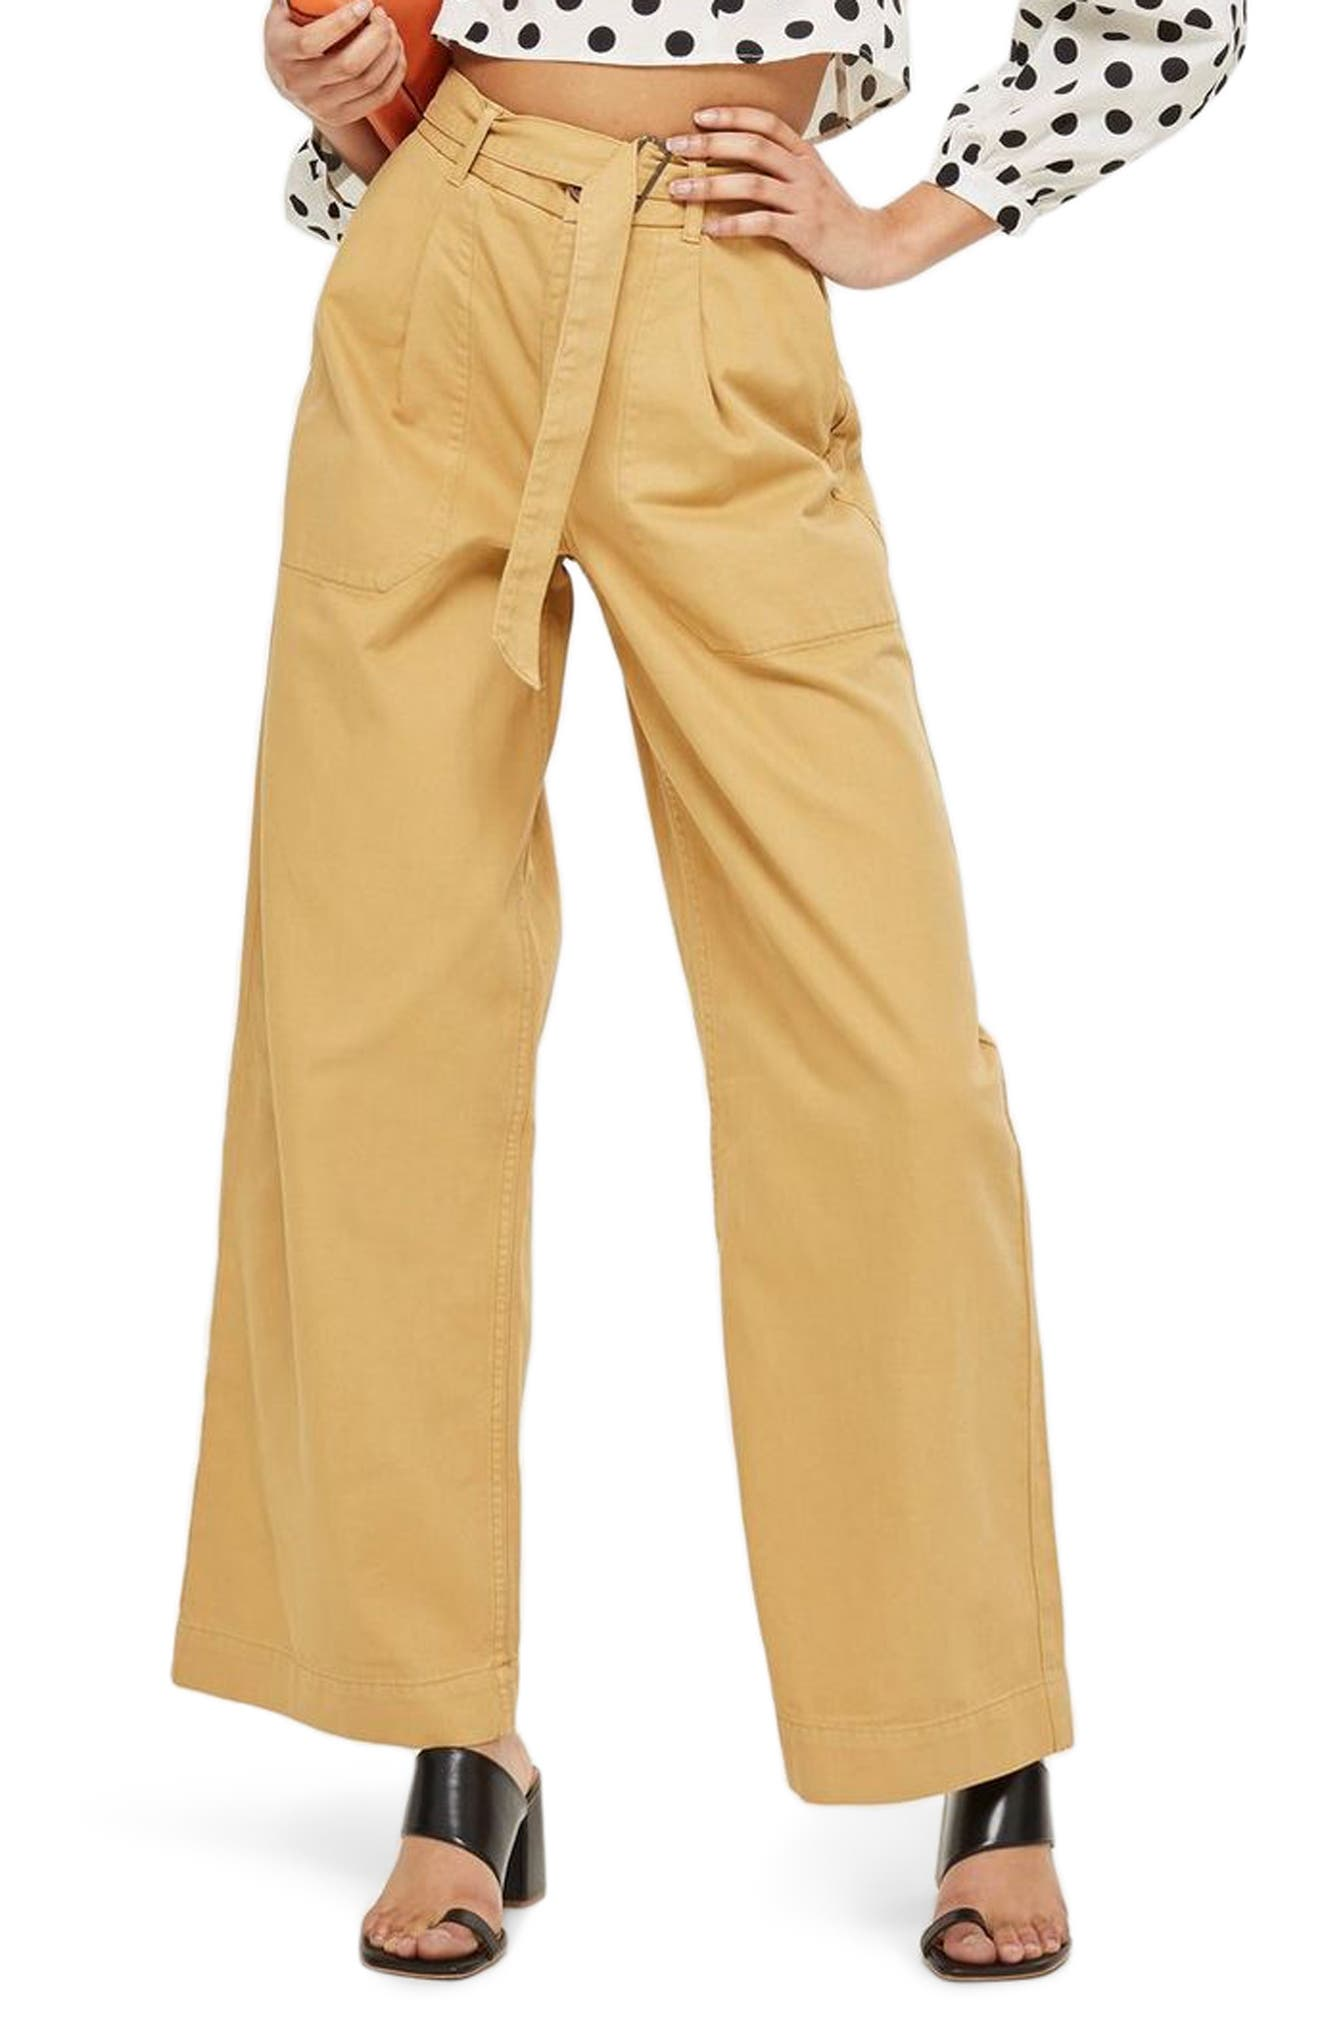 Wonder Wide Chino Trousers,                             Main thumbnail 1, color,                             Stone